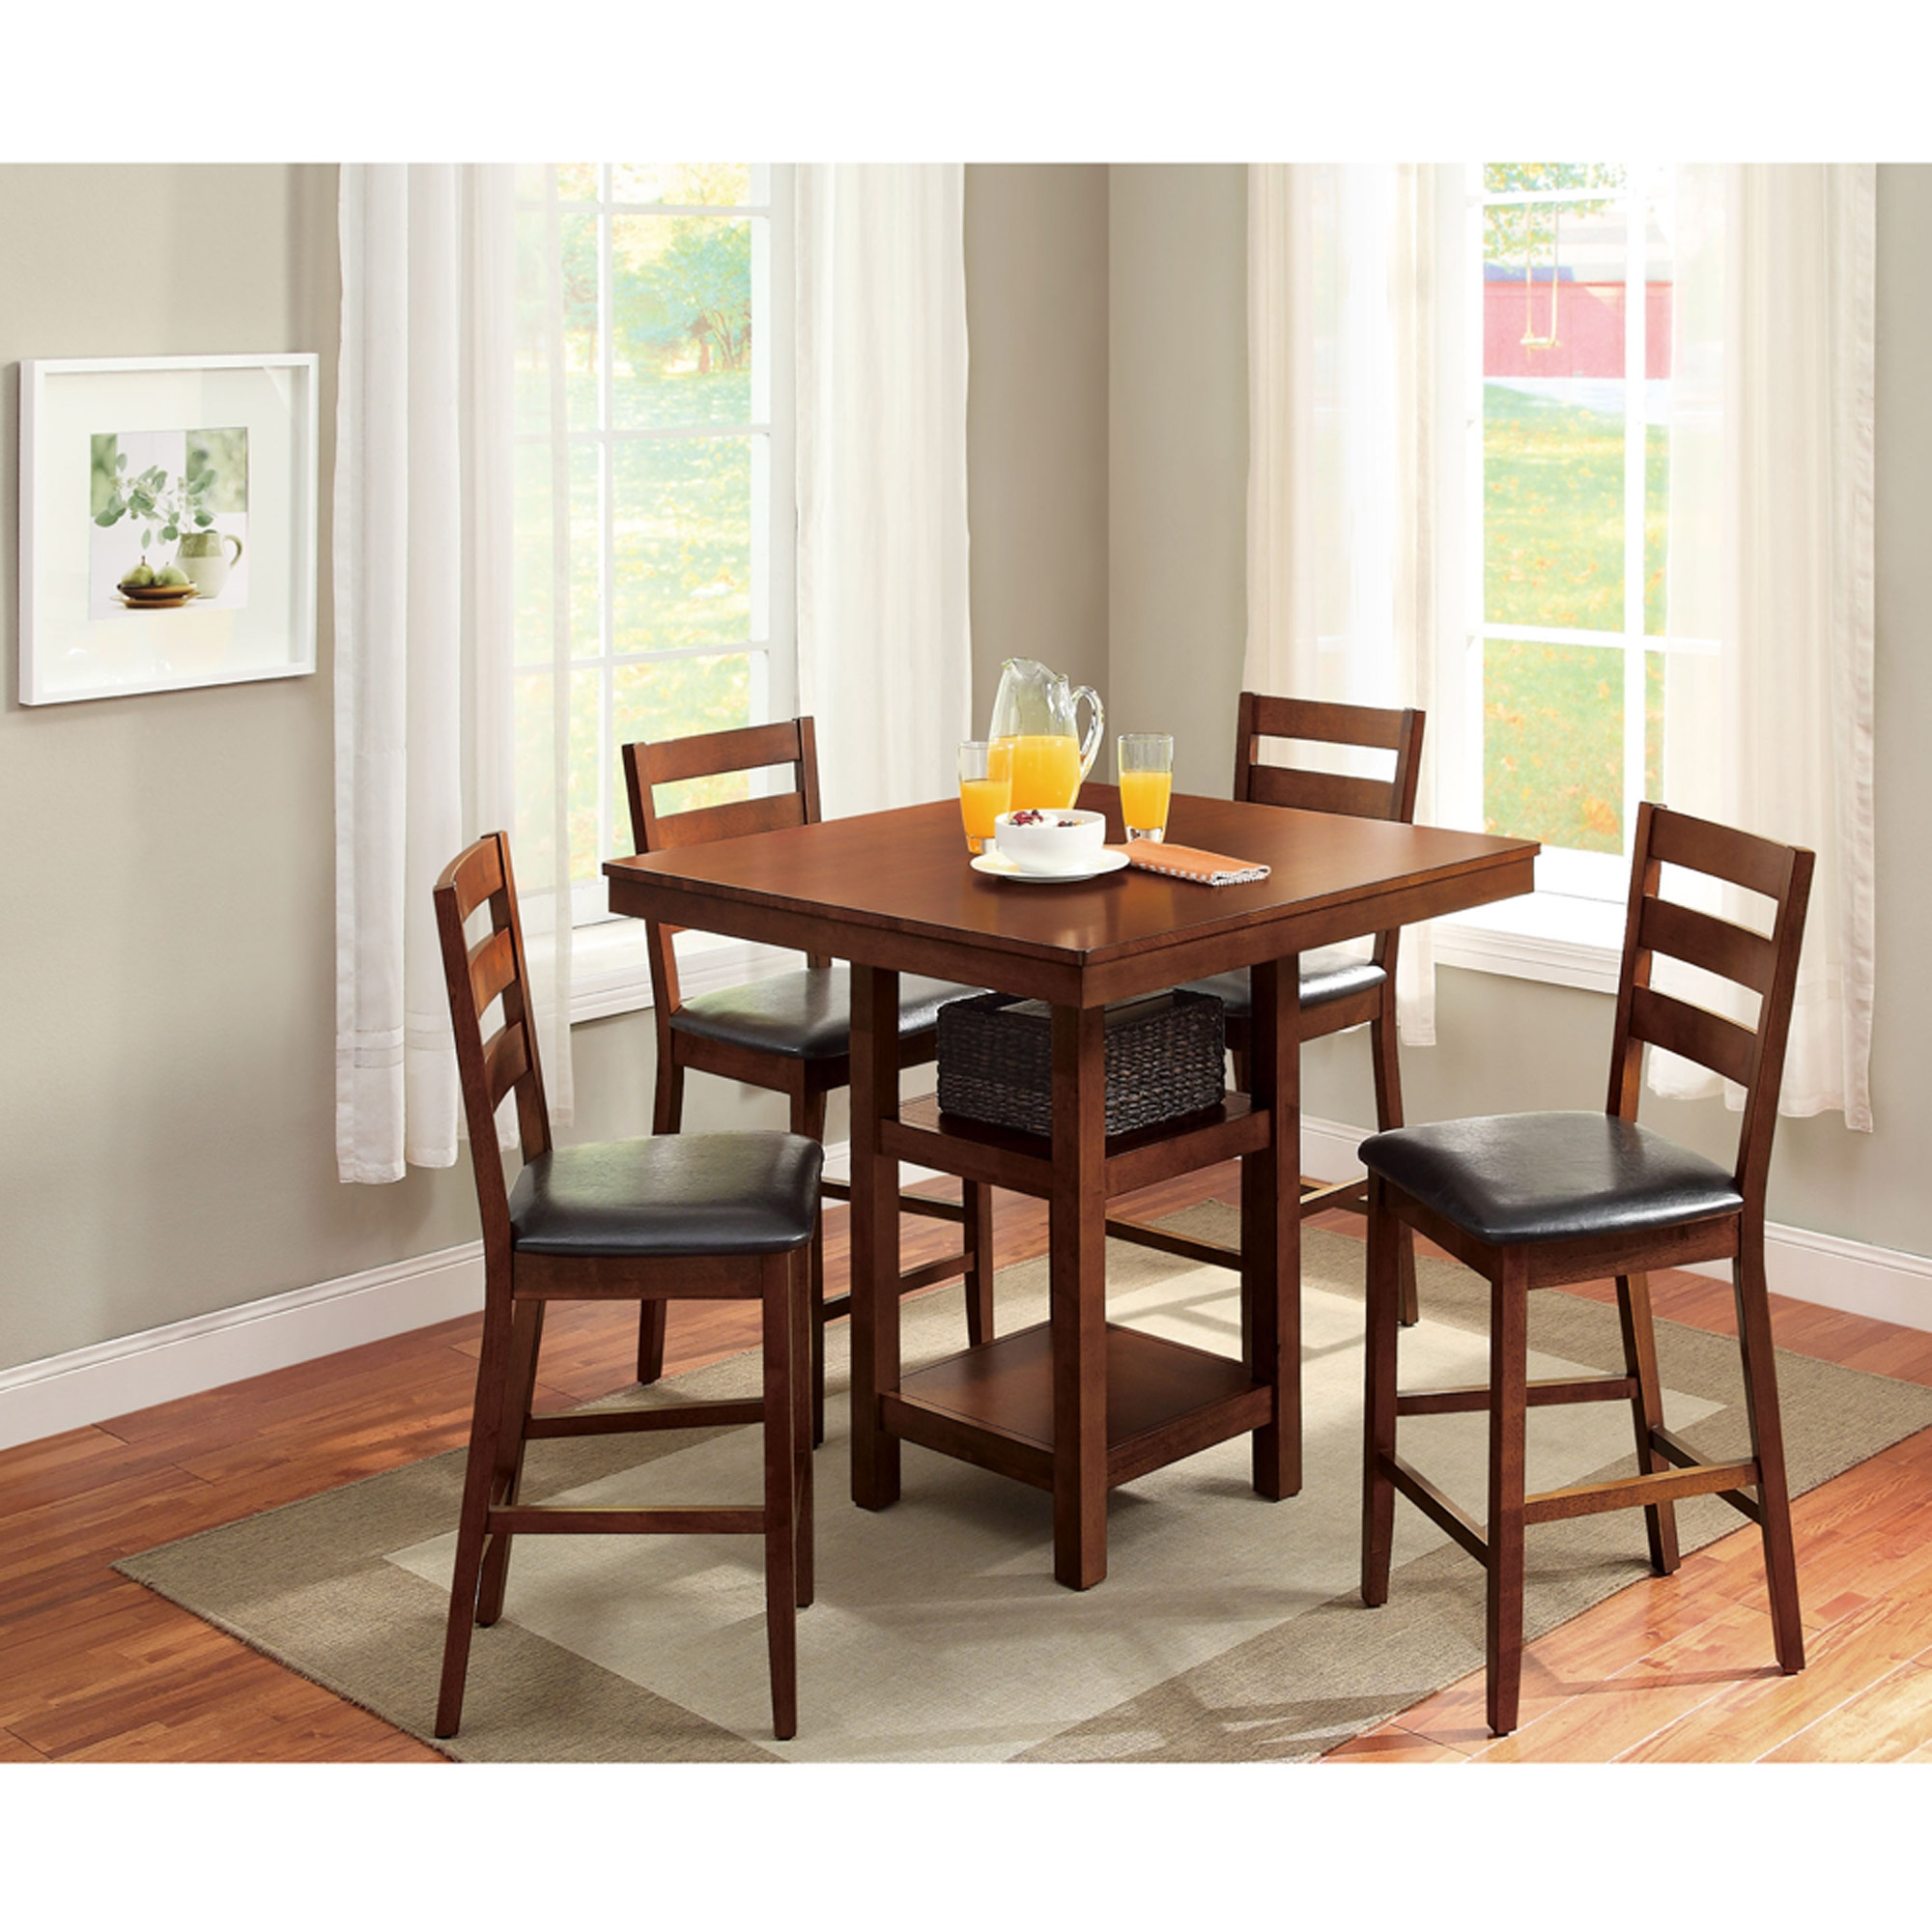 Kitchen And Dining Room Sets